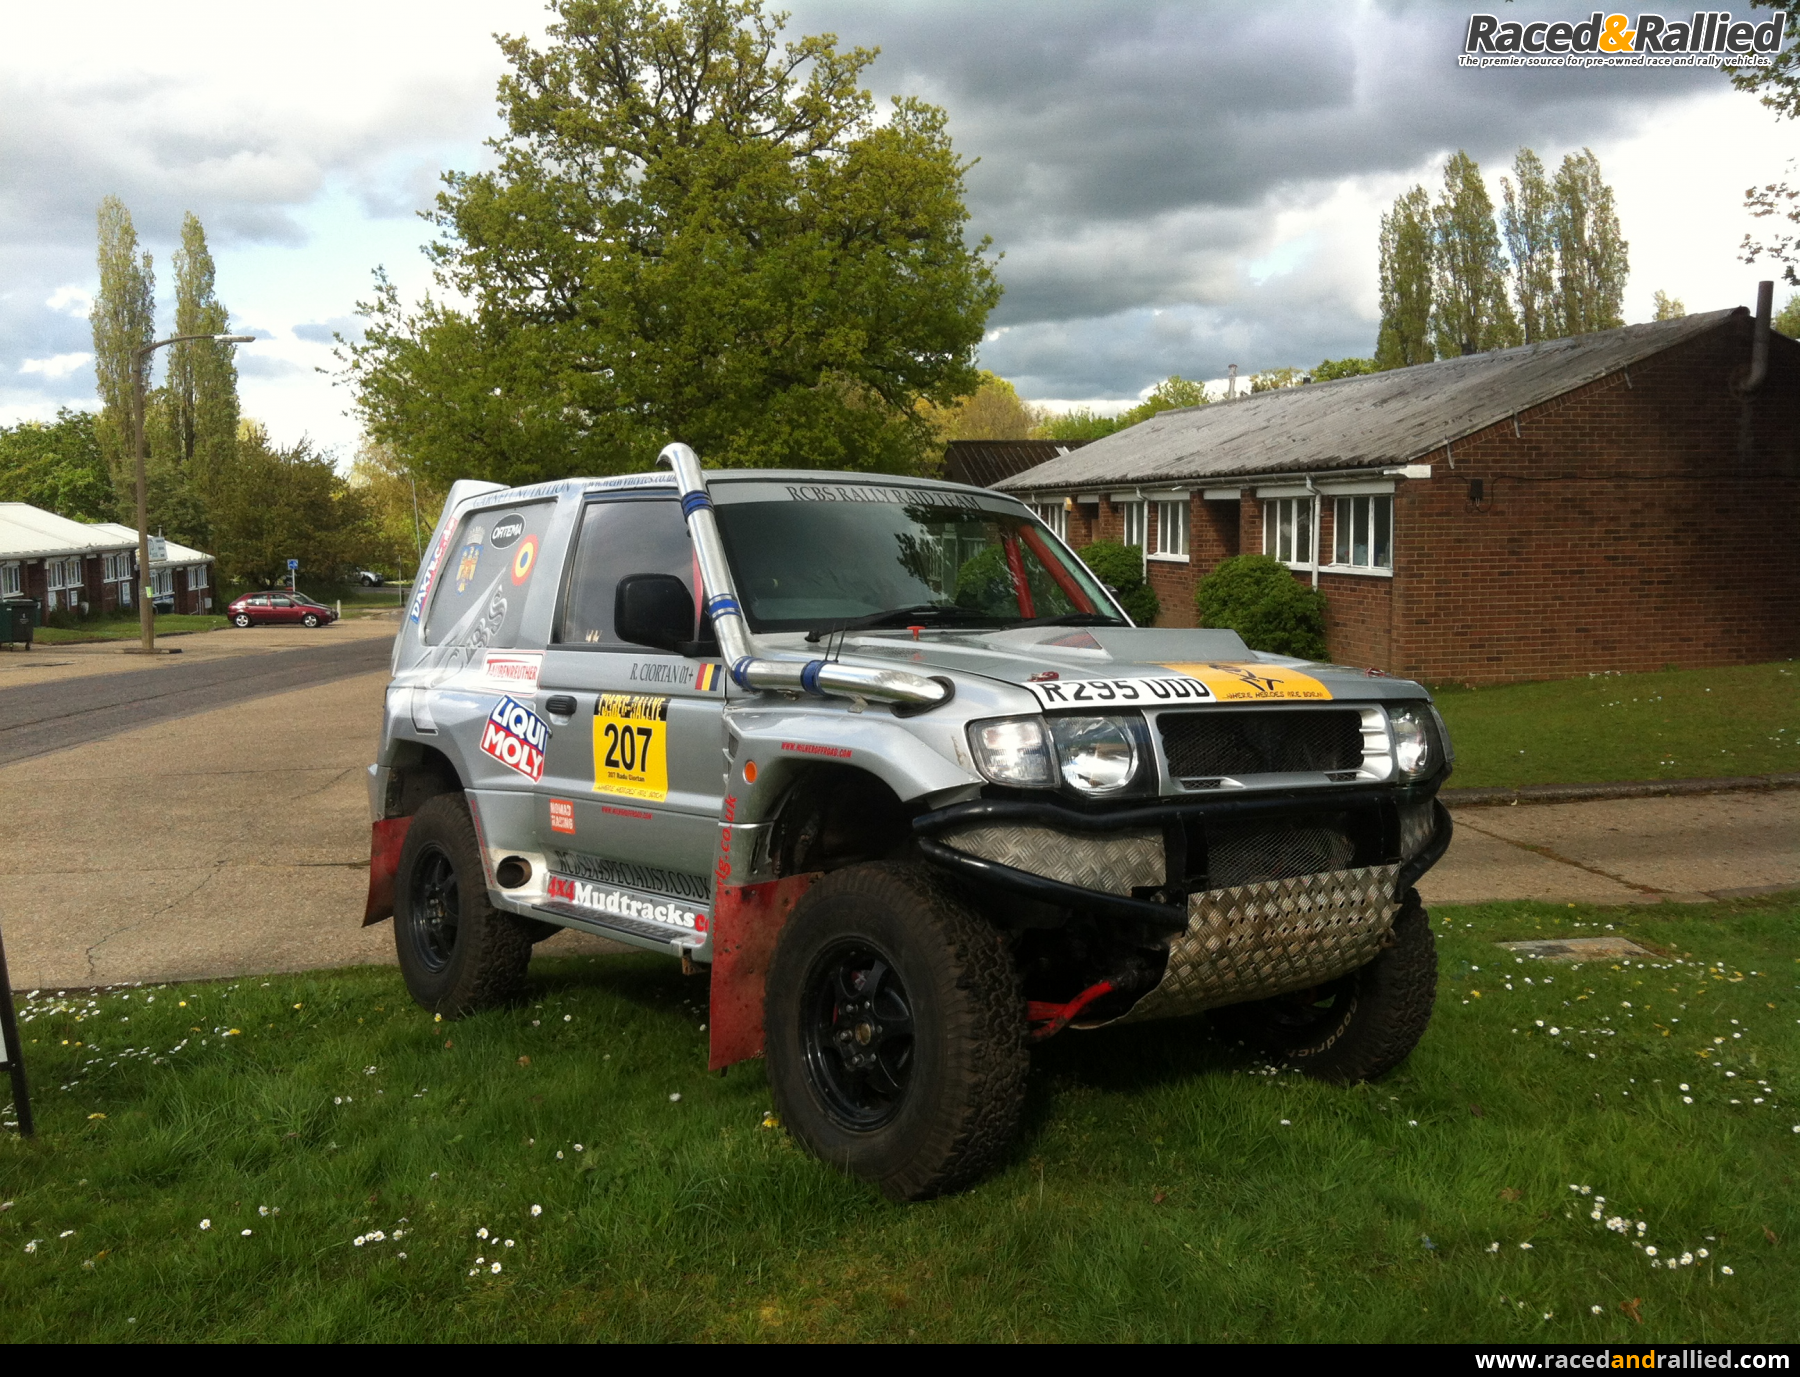 ... Cars for sale at Raced & Rallied | rally cars for sale, race cars for